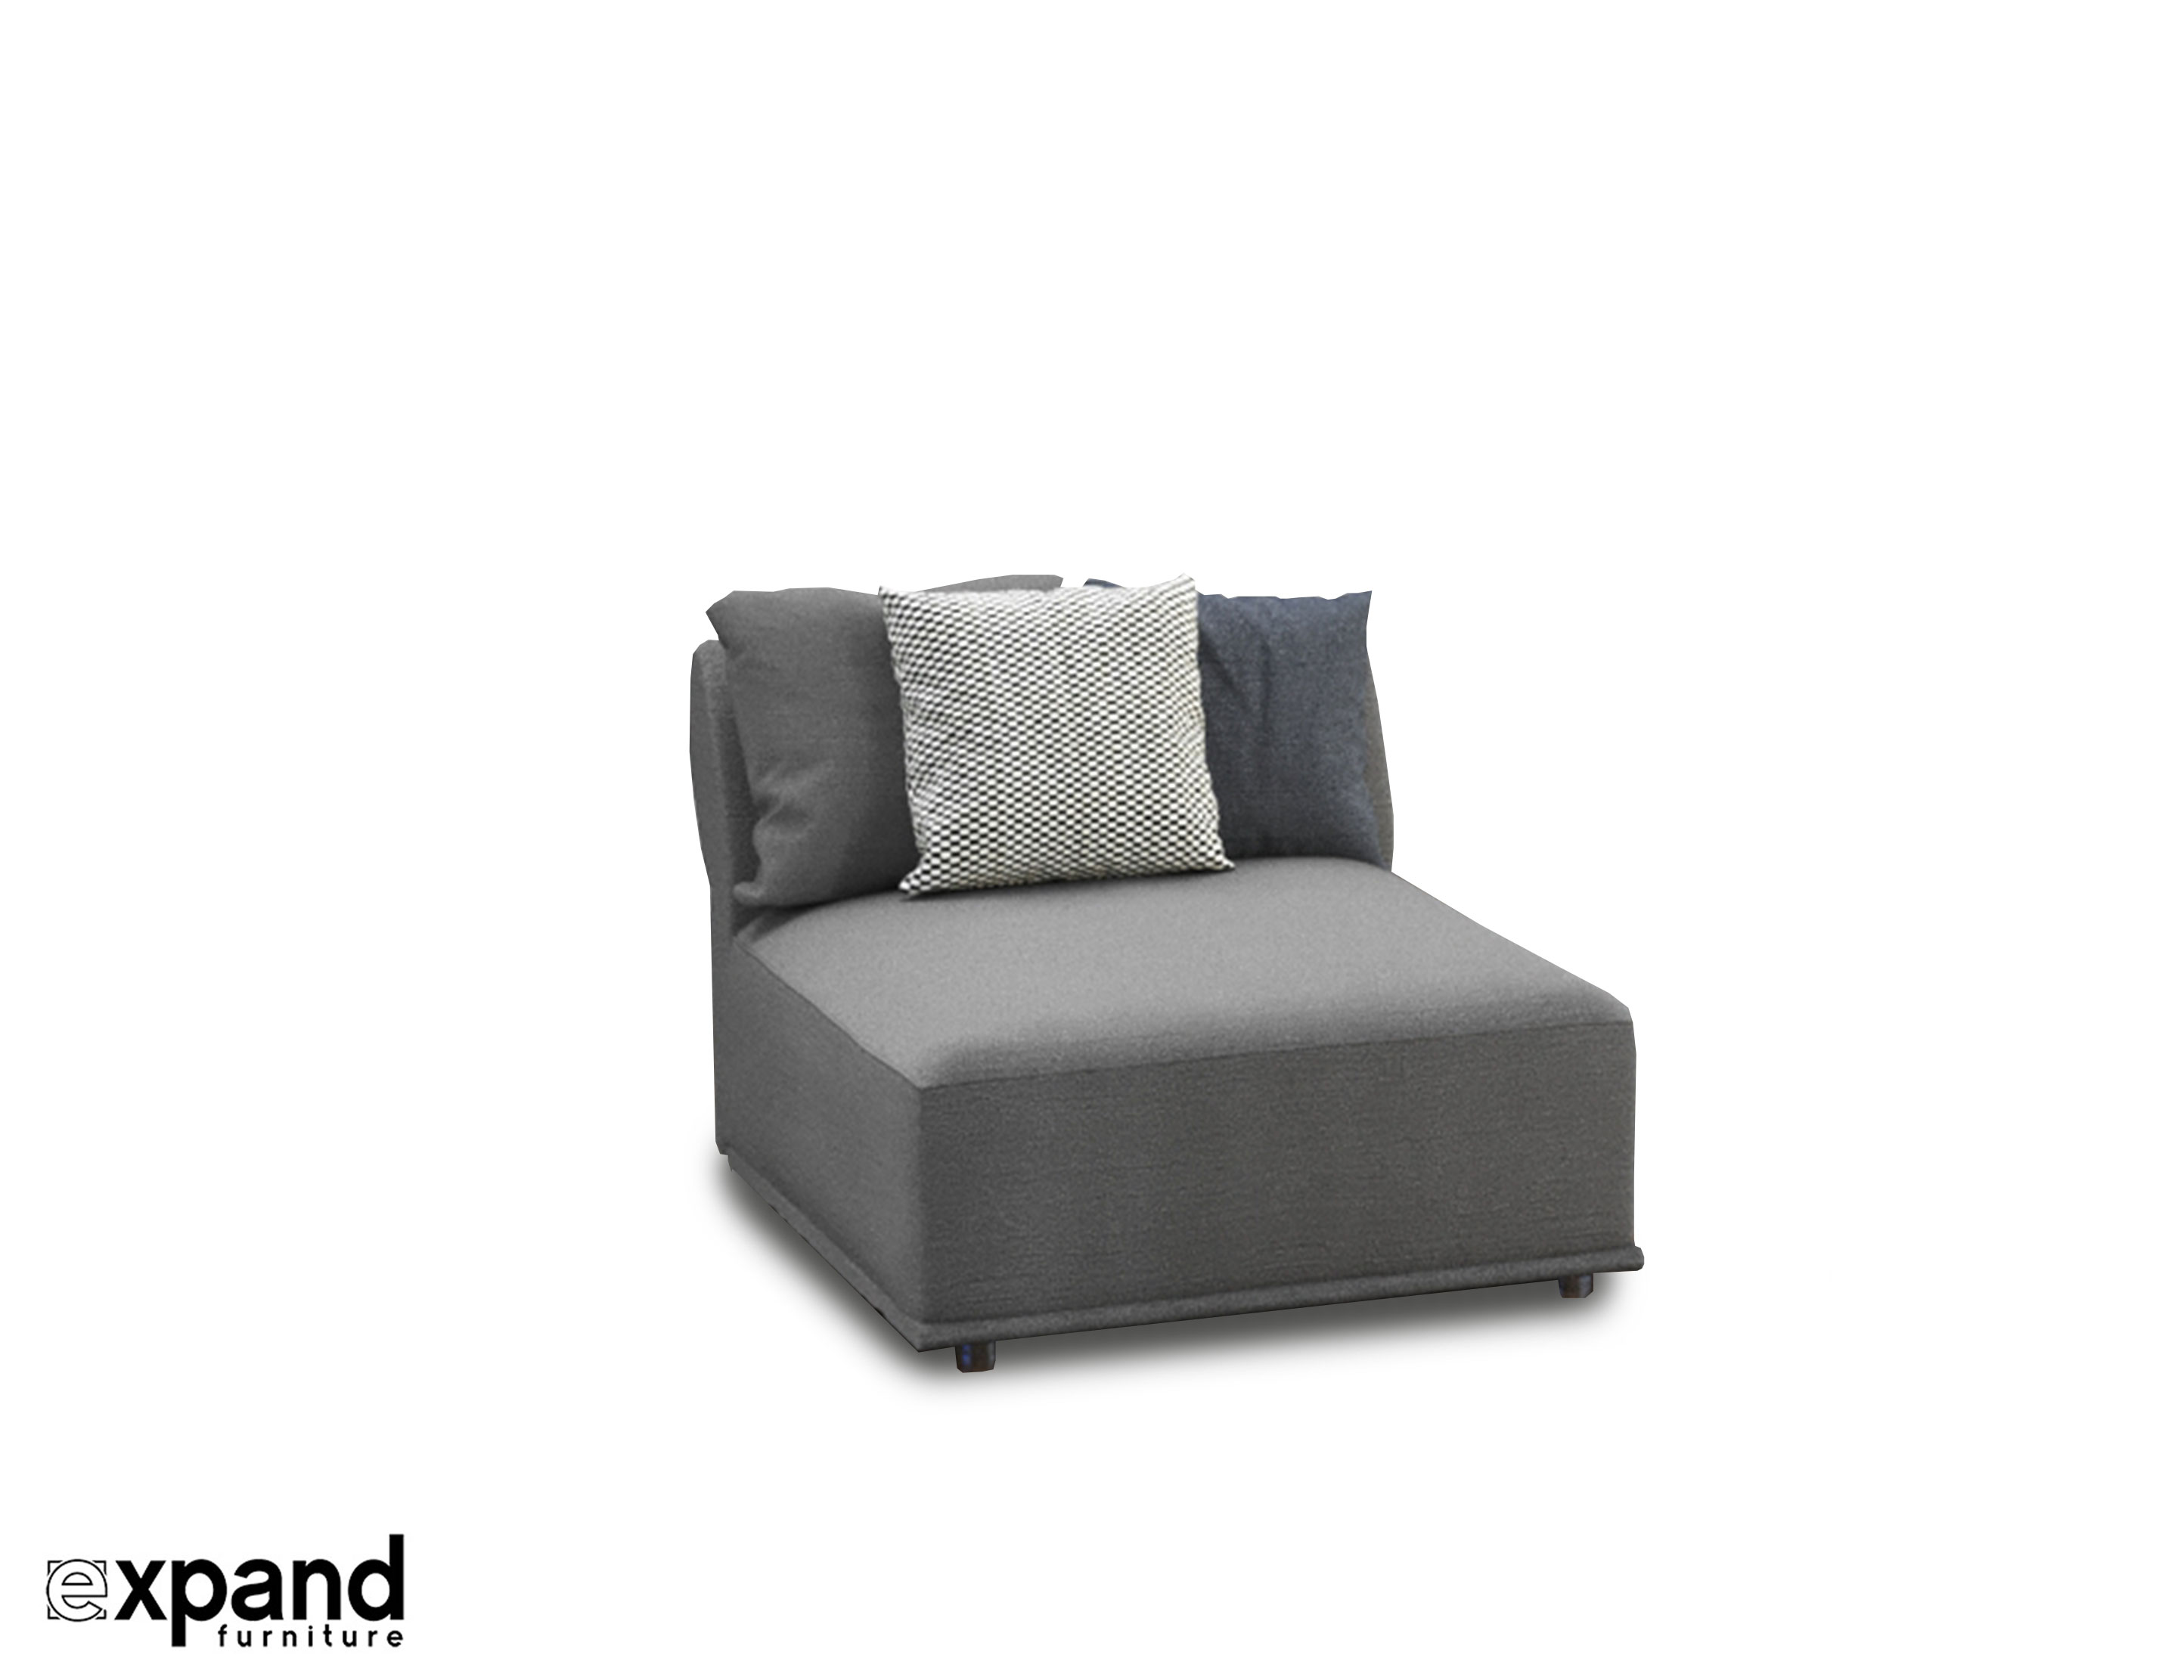 Stratus Sofa Single Modular Seat Expand Furniture